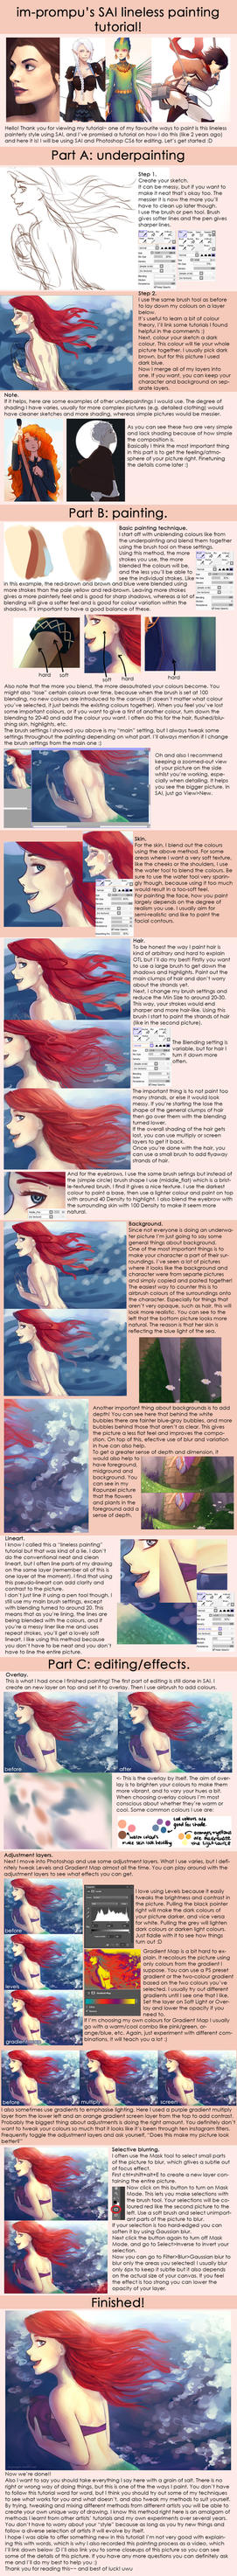 SAI lineless painting tutorial + VIDEO PROCESS by im-promptu